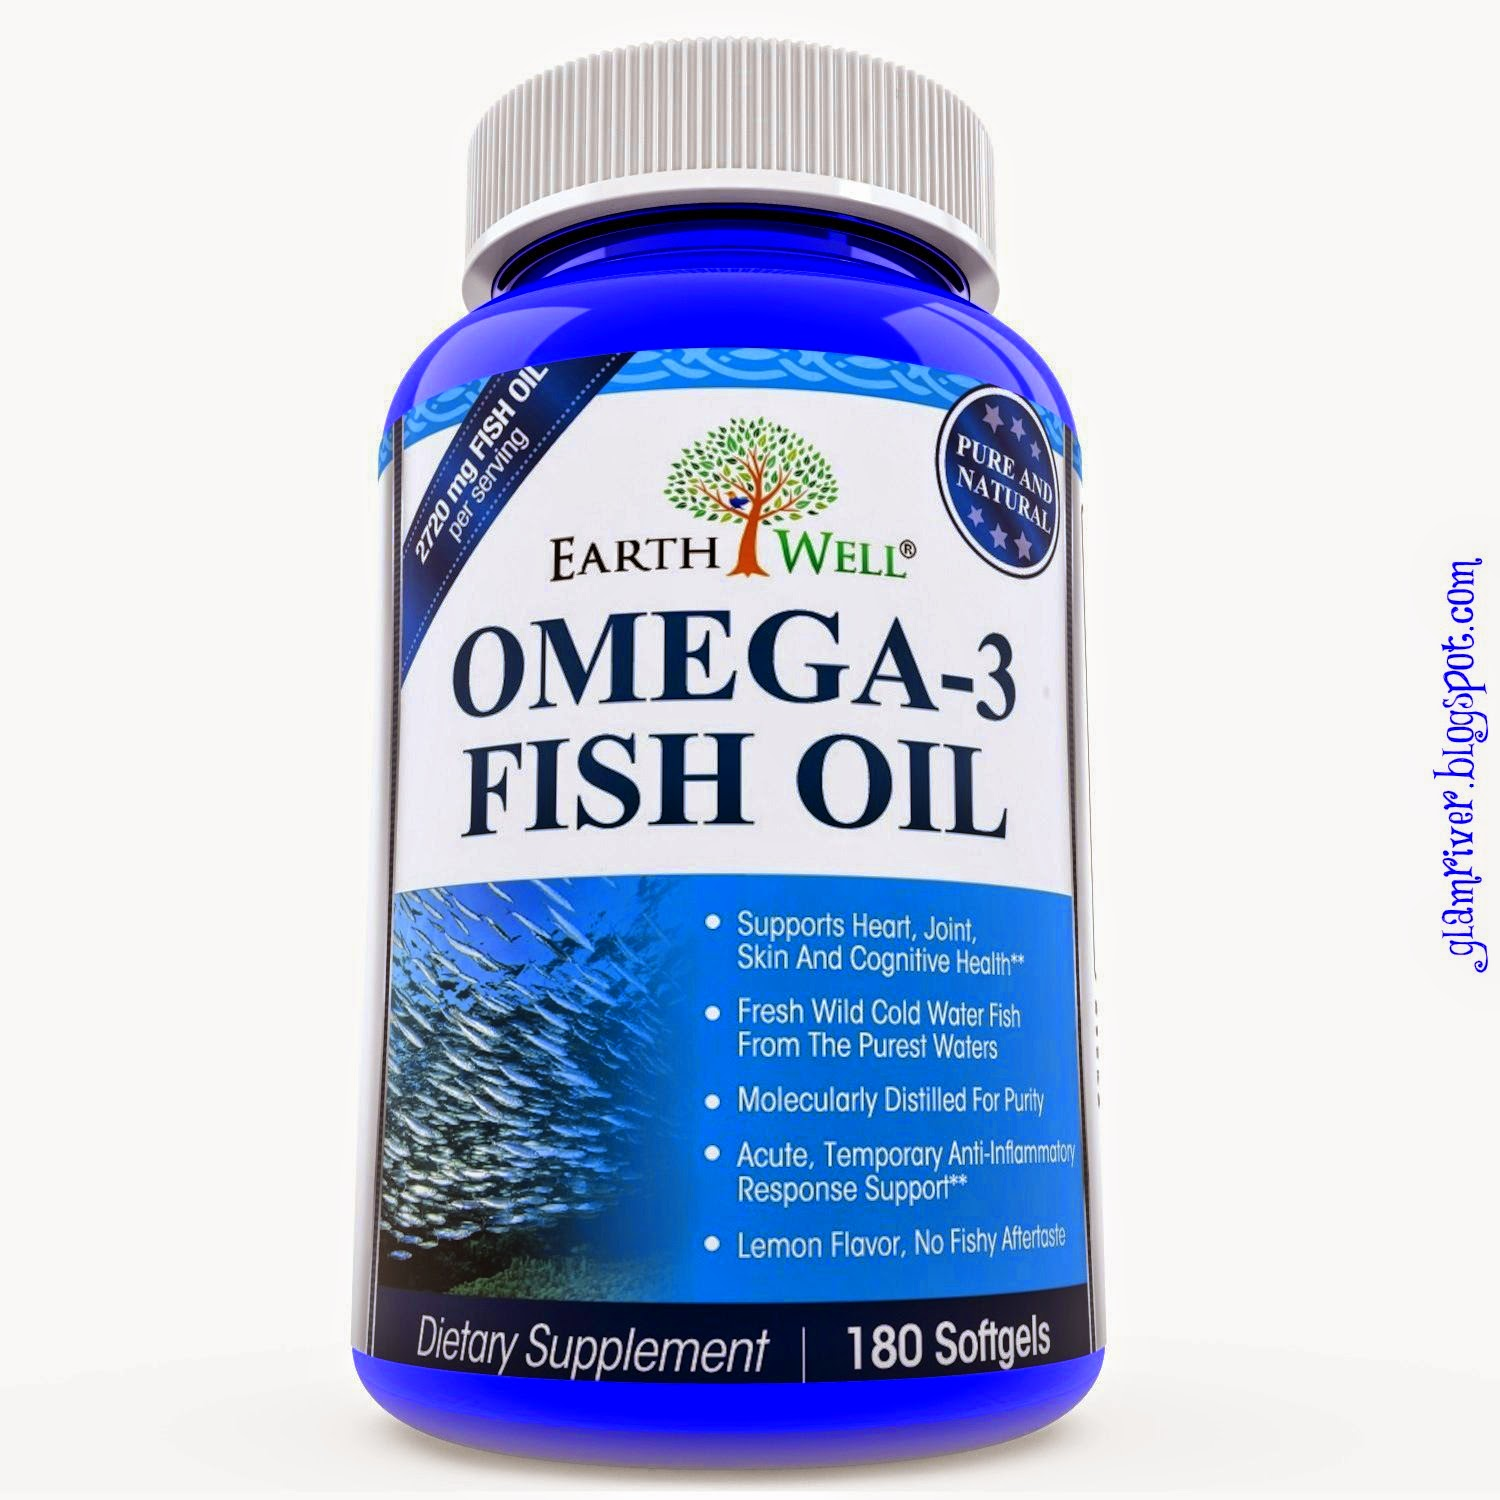 Glamriver omega 3 fish oil by earthwell nutrition review for Does fish oil help with joint pain